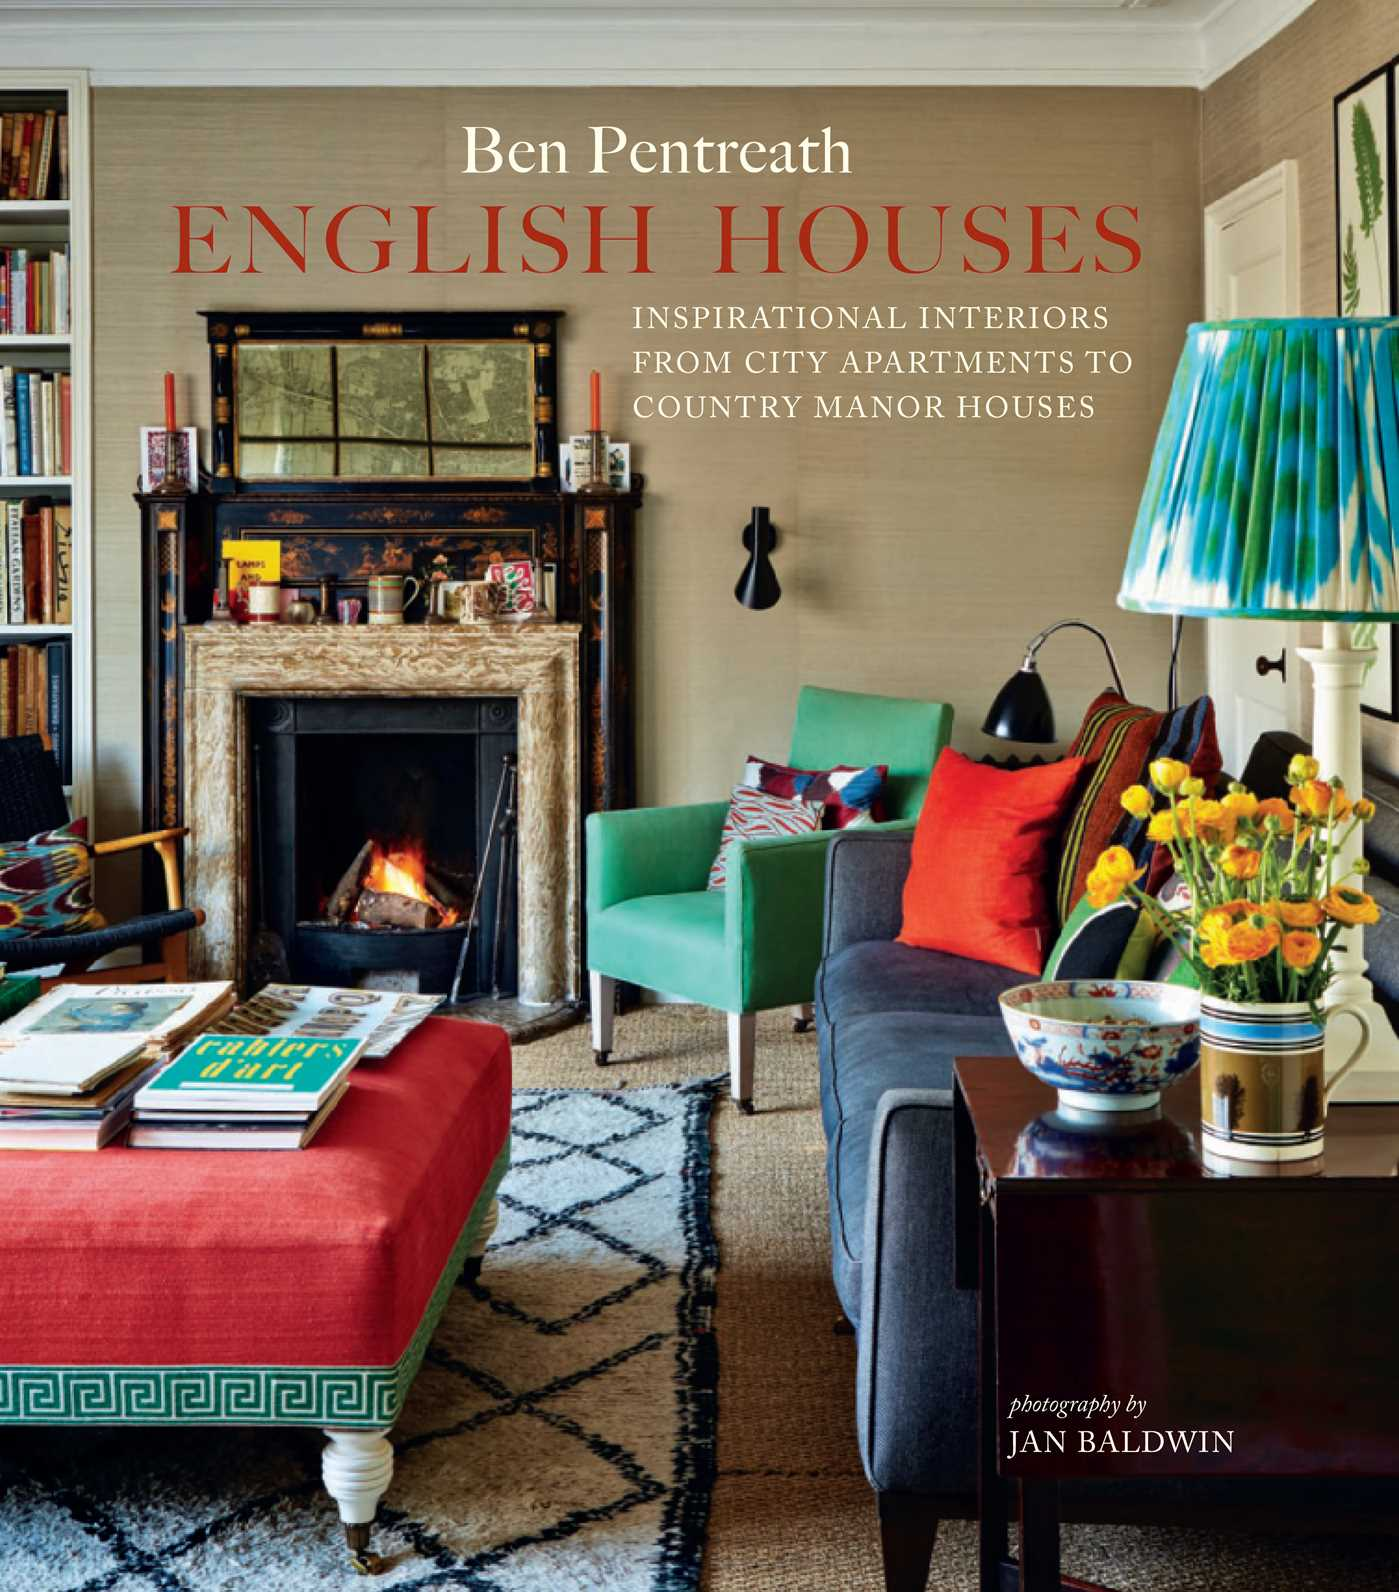 3 Coffee Table Books For Your Christmas List